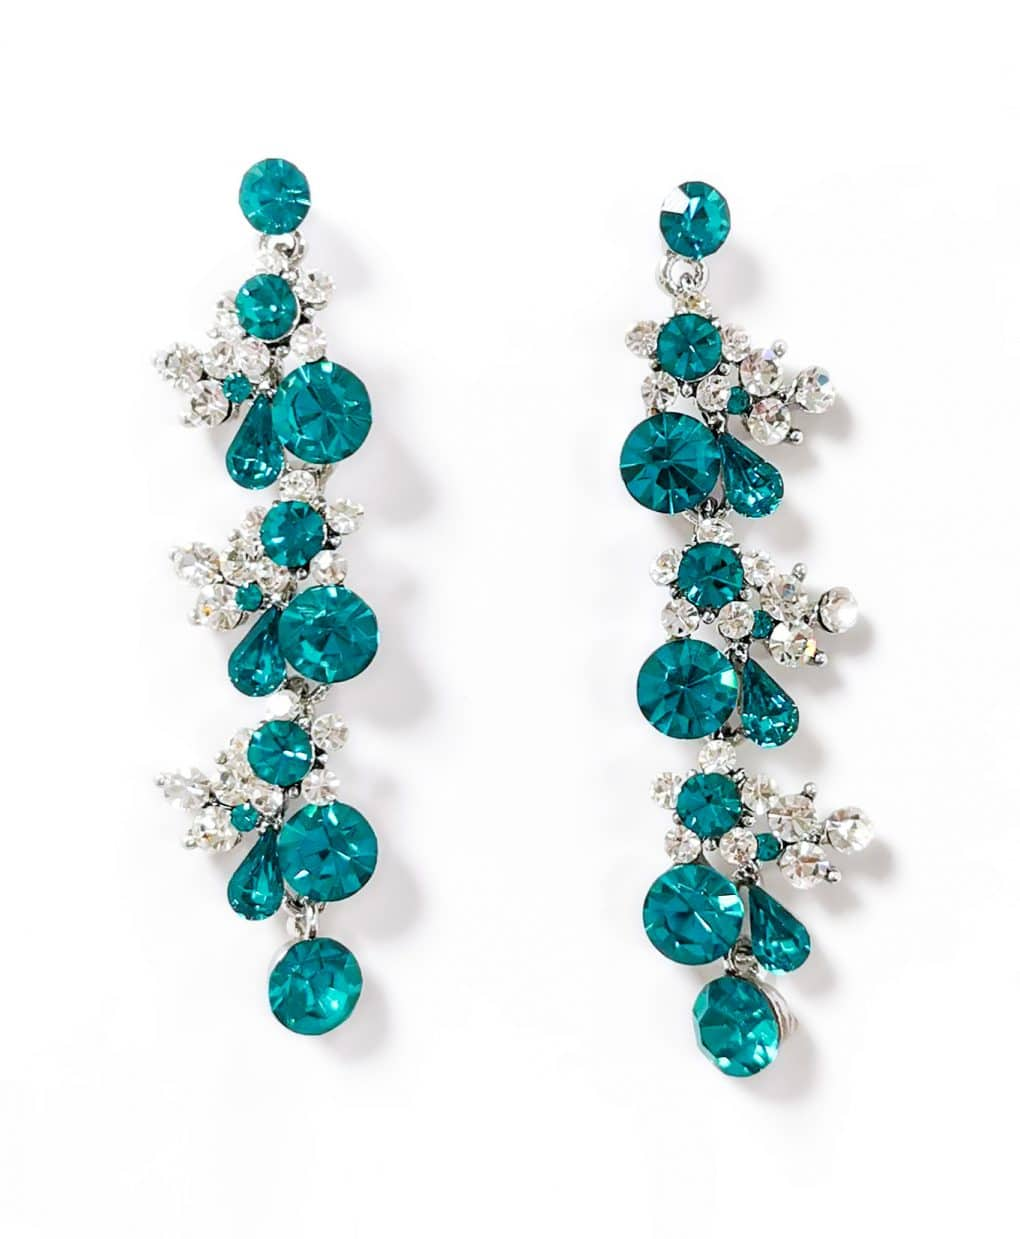 JADE-AND-CLEAR-CRYSTAL-CHANDELIER-EARRINGS-IRELAND-ALILA-BOUTIQUE